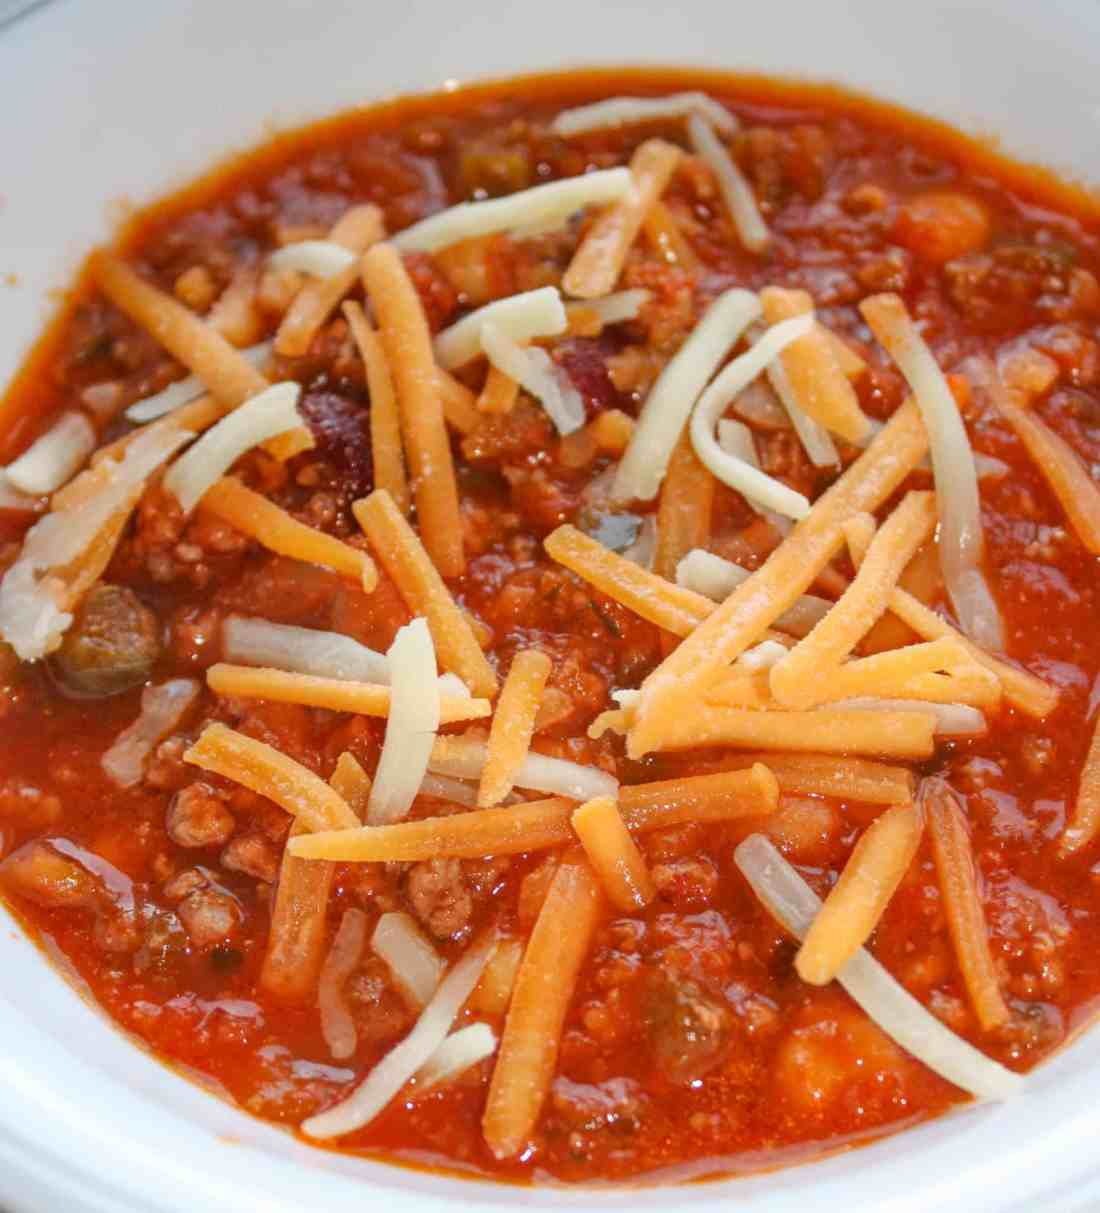 Instant Pot Beef Chili is a quick one pot dinner recipe to warm you up this fall and winter.  It is loaded with flavour and it is very easy to kick up or lower the heat depending on the intensity of the salsa you choose to add.